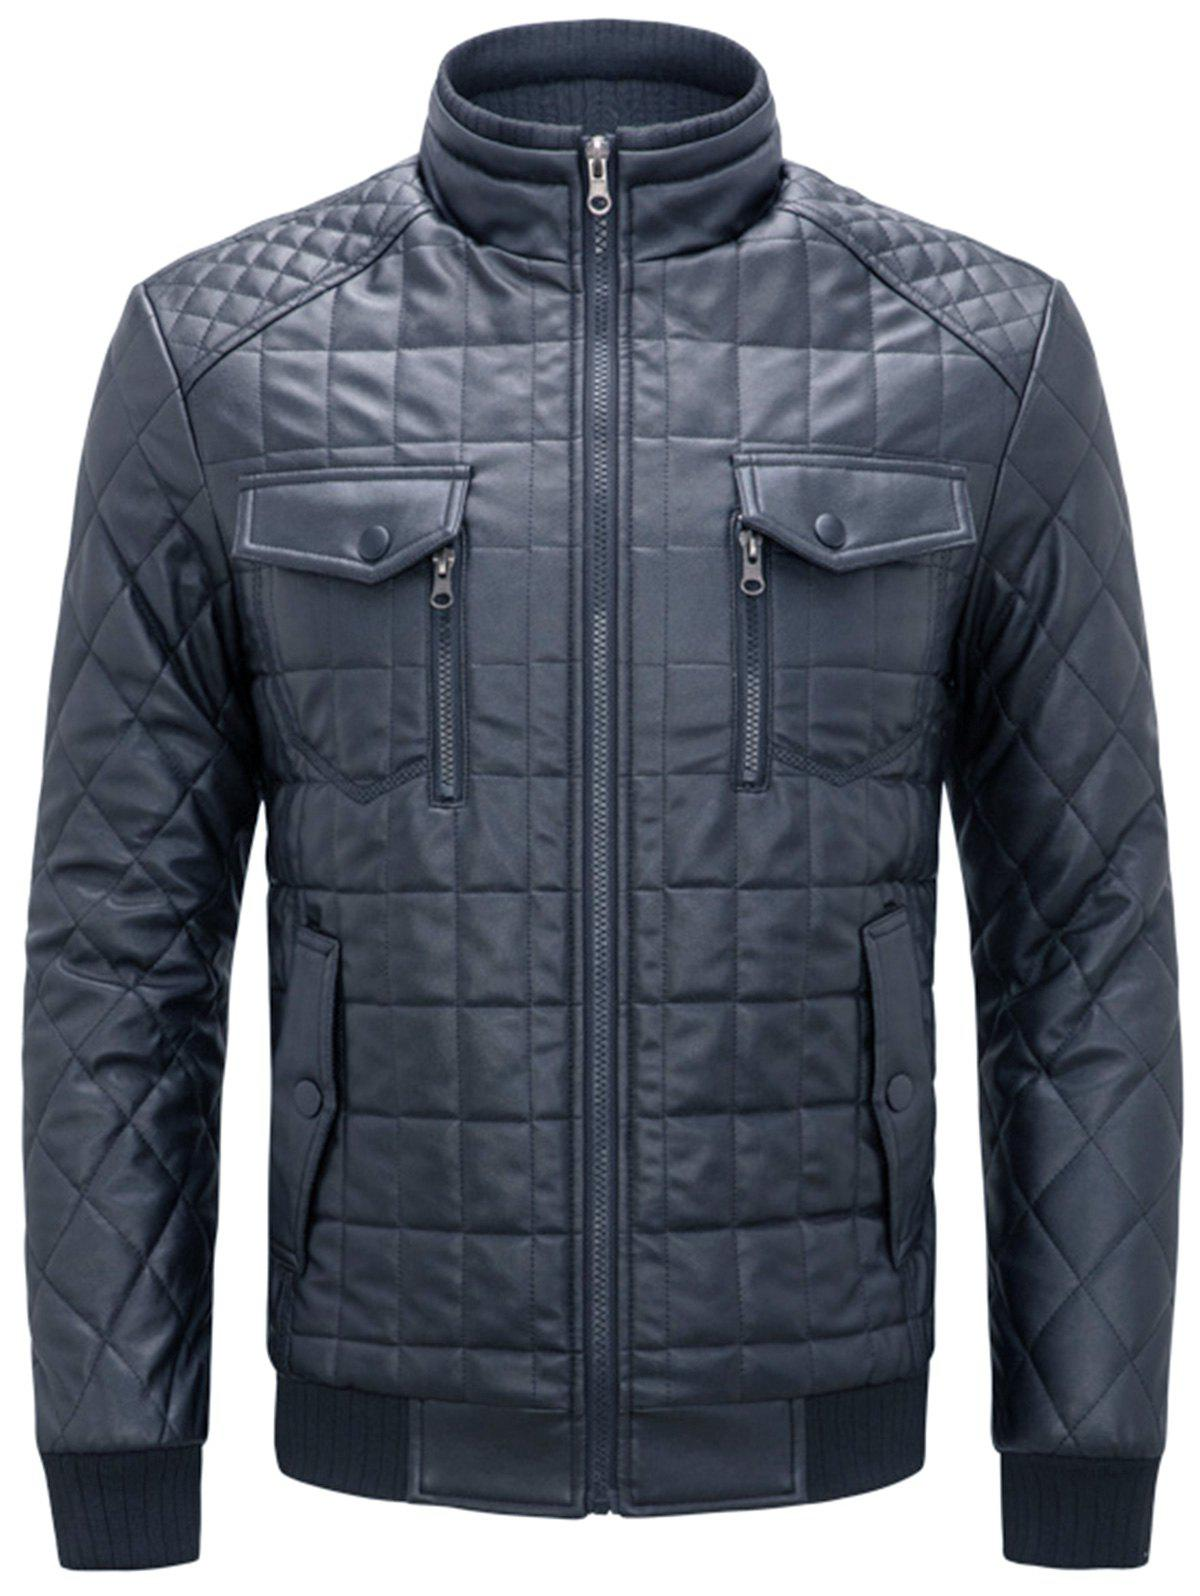 Chest Flap Pockets Quilted Faux Leather Jacket - DEEP BLUE XL